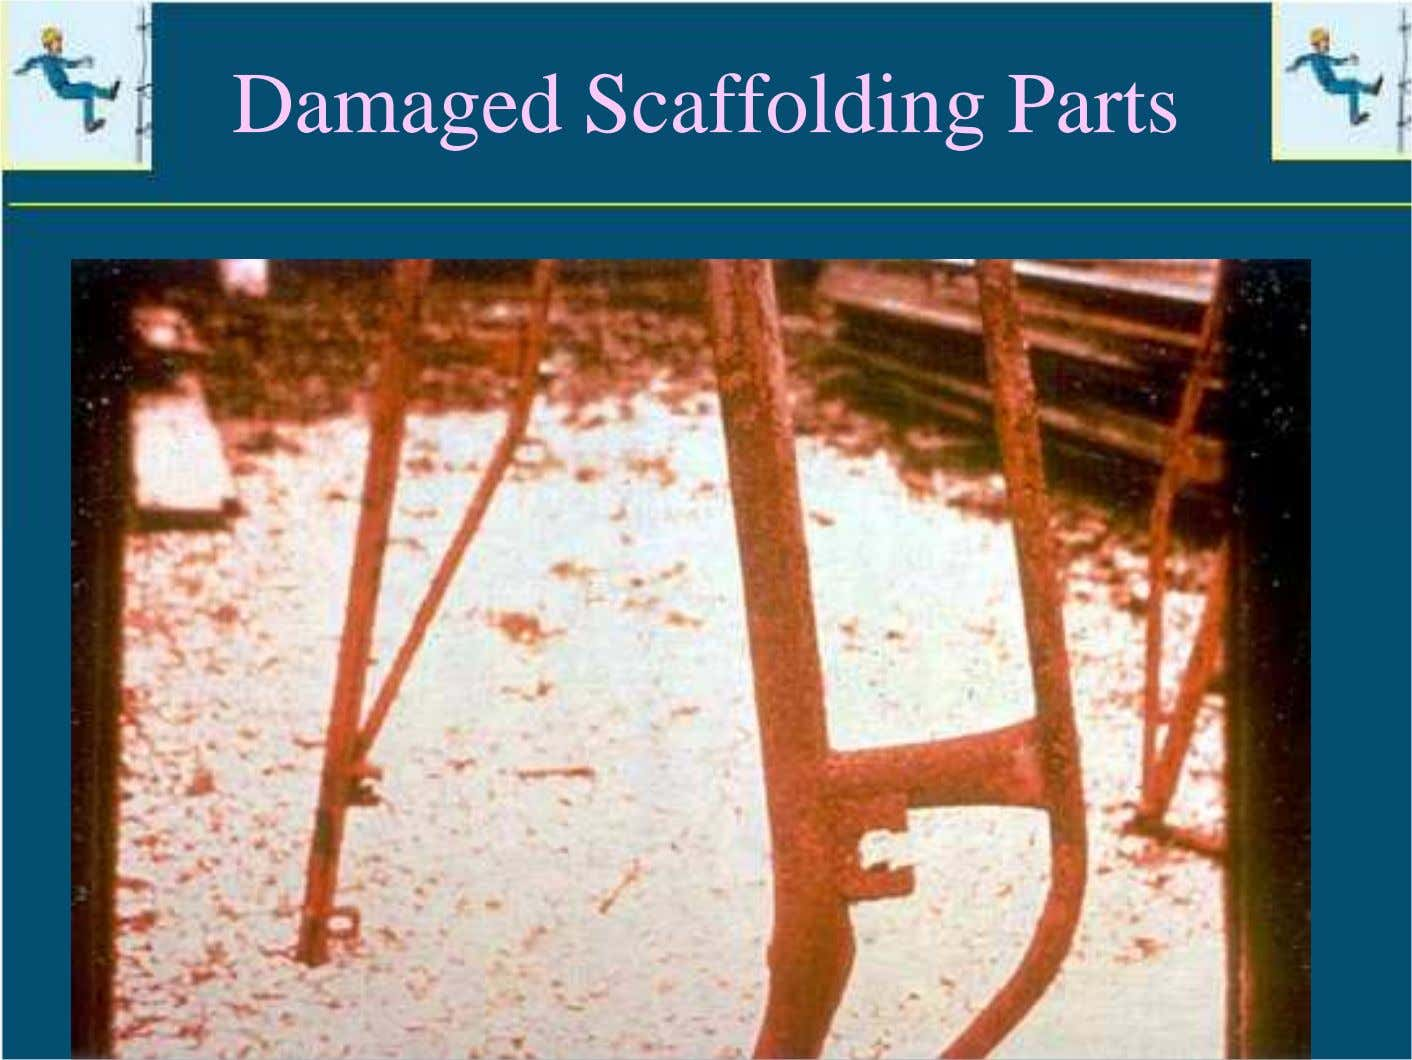 Damaged Scaffolding Parts